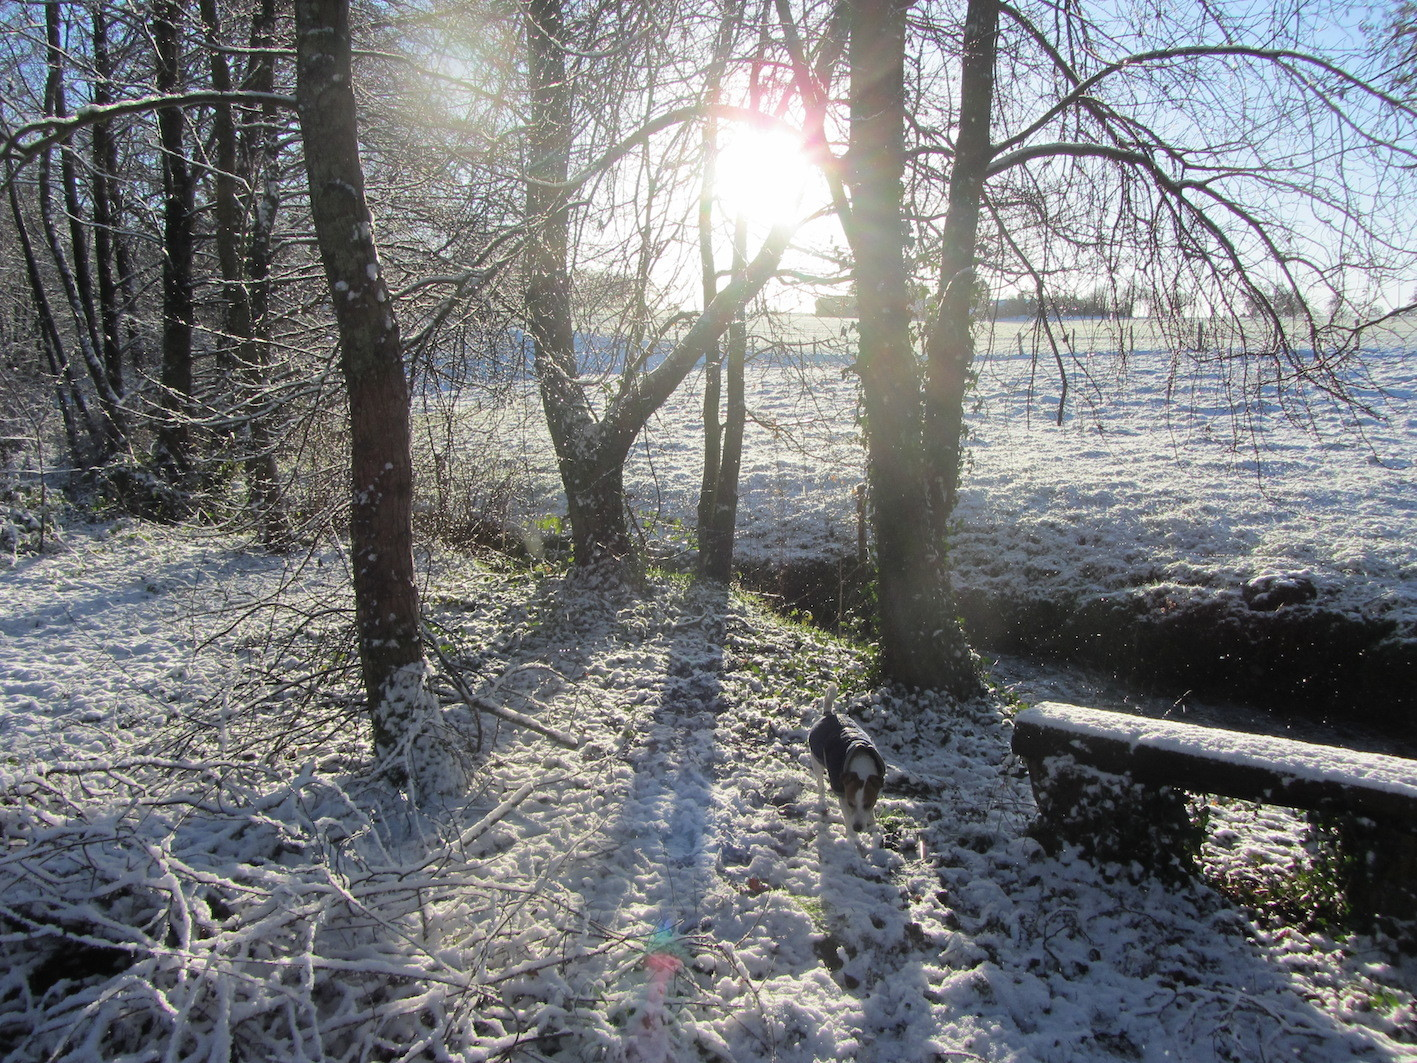 winter sun through the trees at Le Choisel, Normandy, France